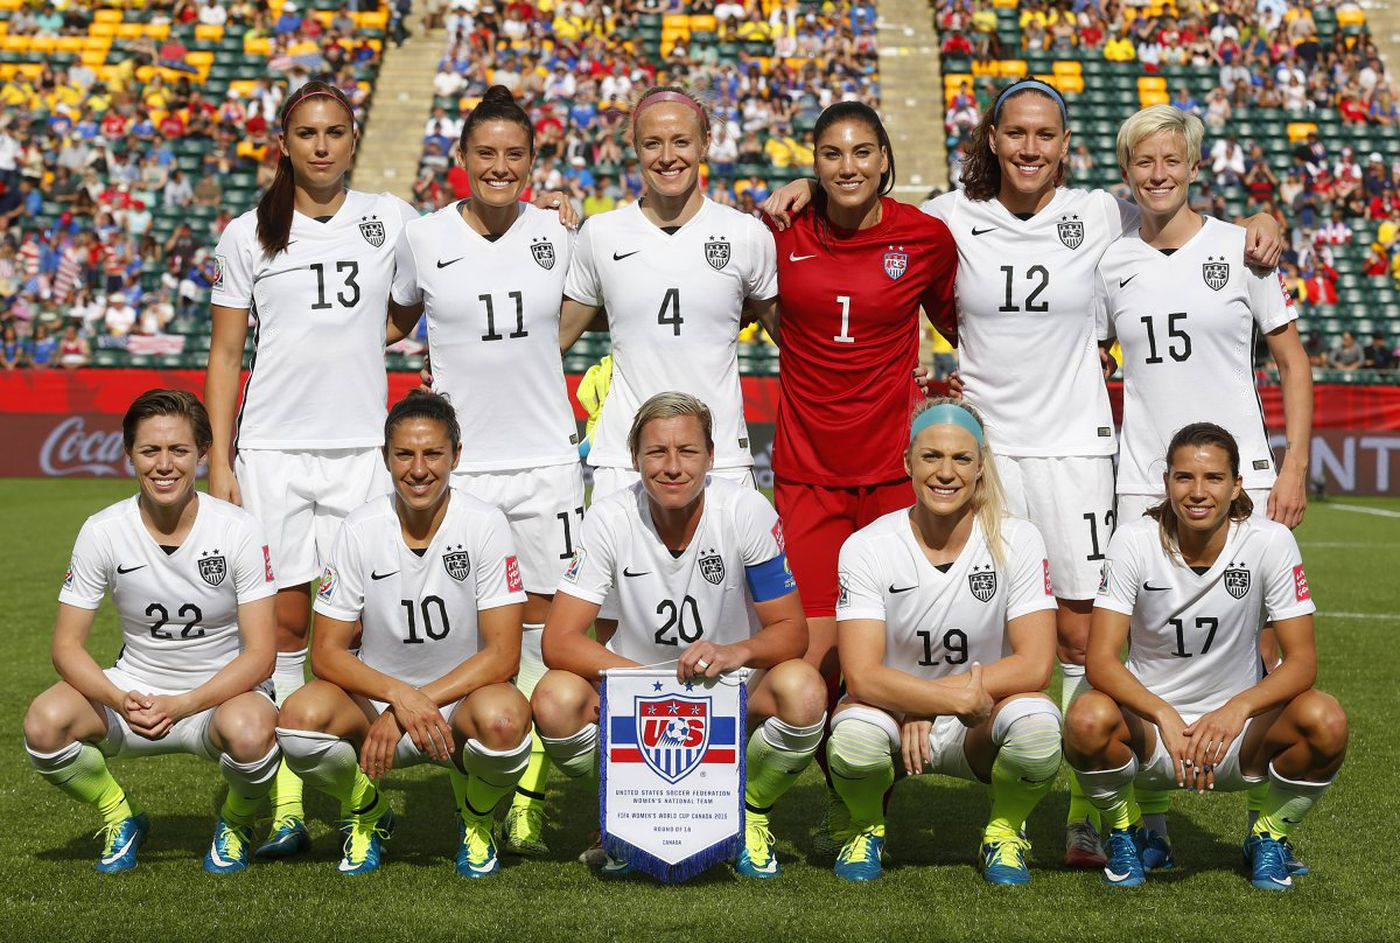 U.S. women's soccer team in serious need of ethnic, racial ...